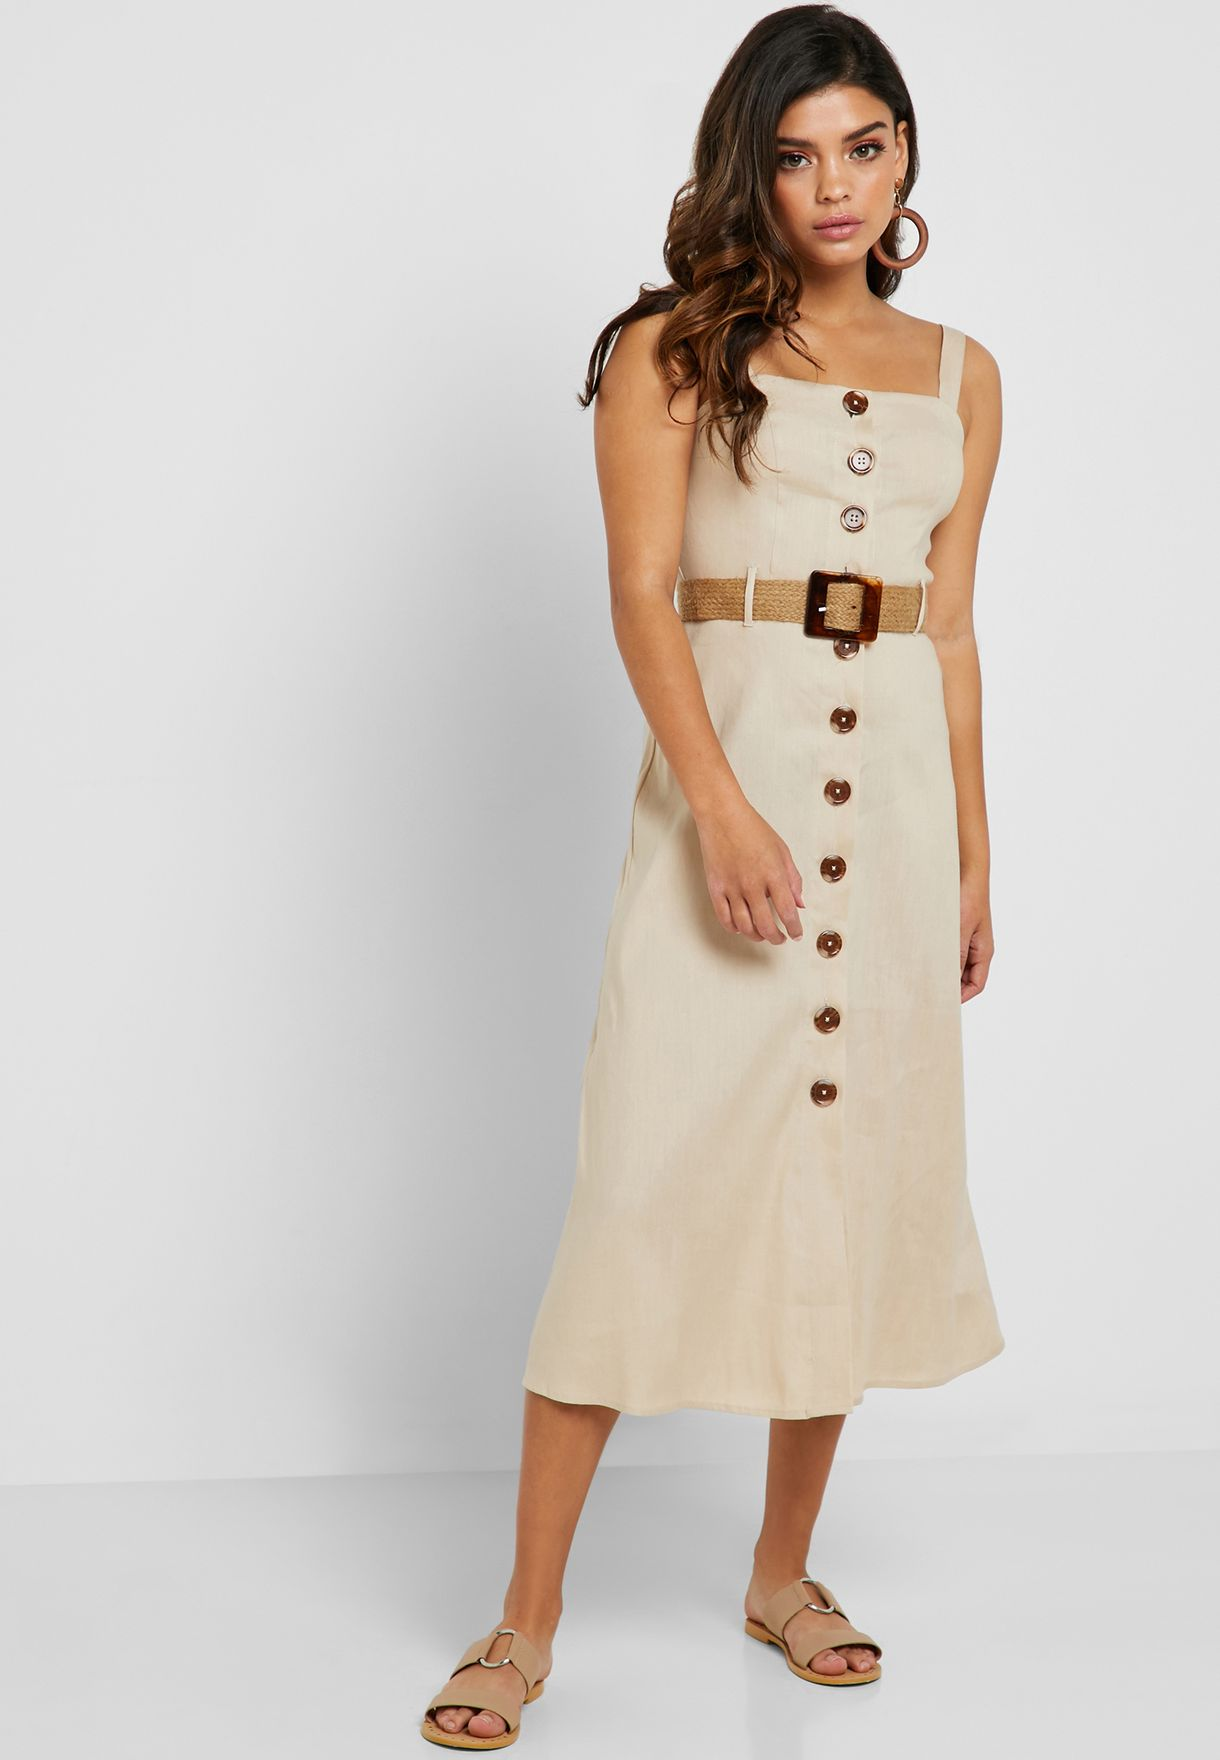 84a065e8d7d Shop Forever 21 beige Square Neck Button Down Dress 341834 for Women in  Qatar - 20008AT55CJP